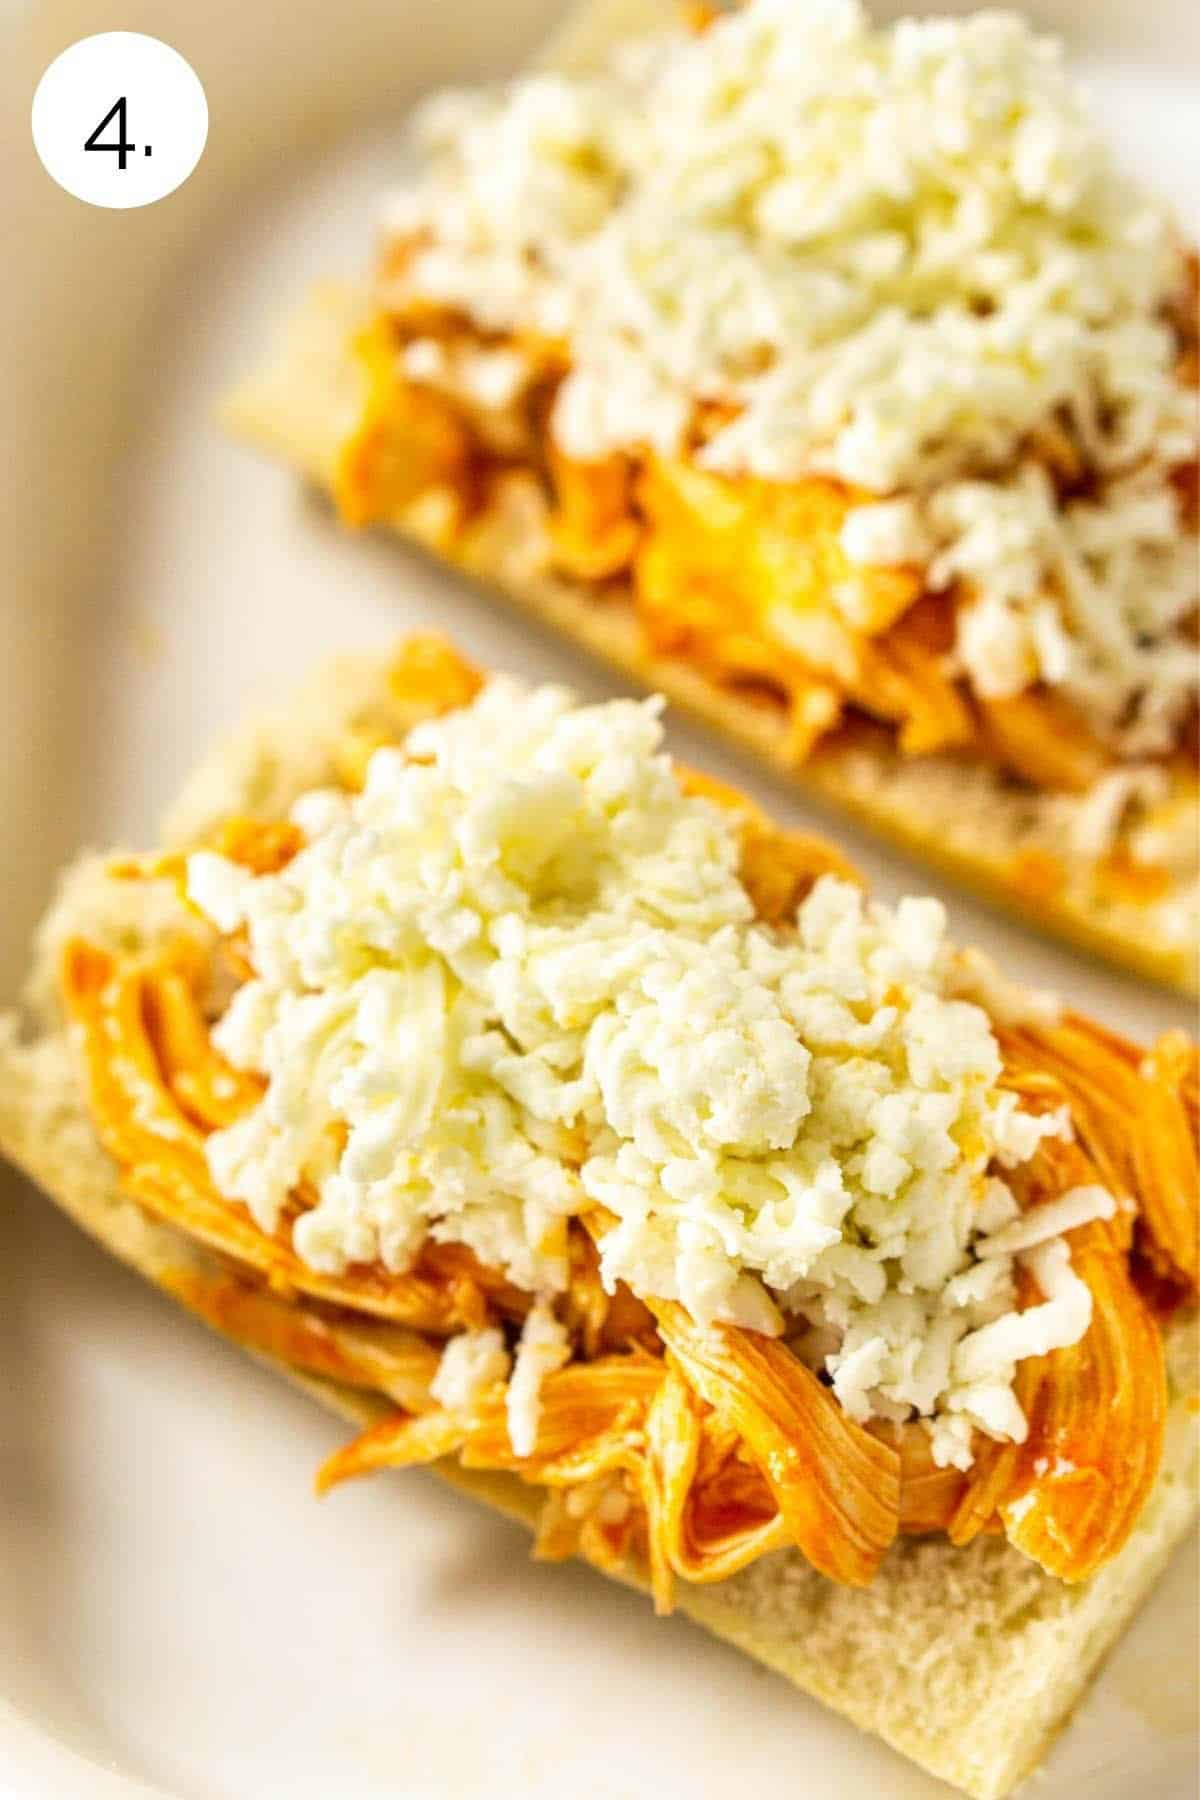 Topping the sandwiches with freshly grated mozzarella in a white baking dish.